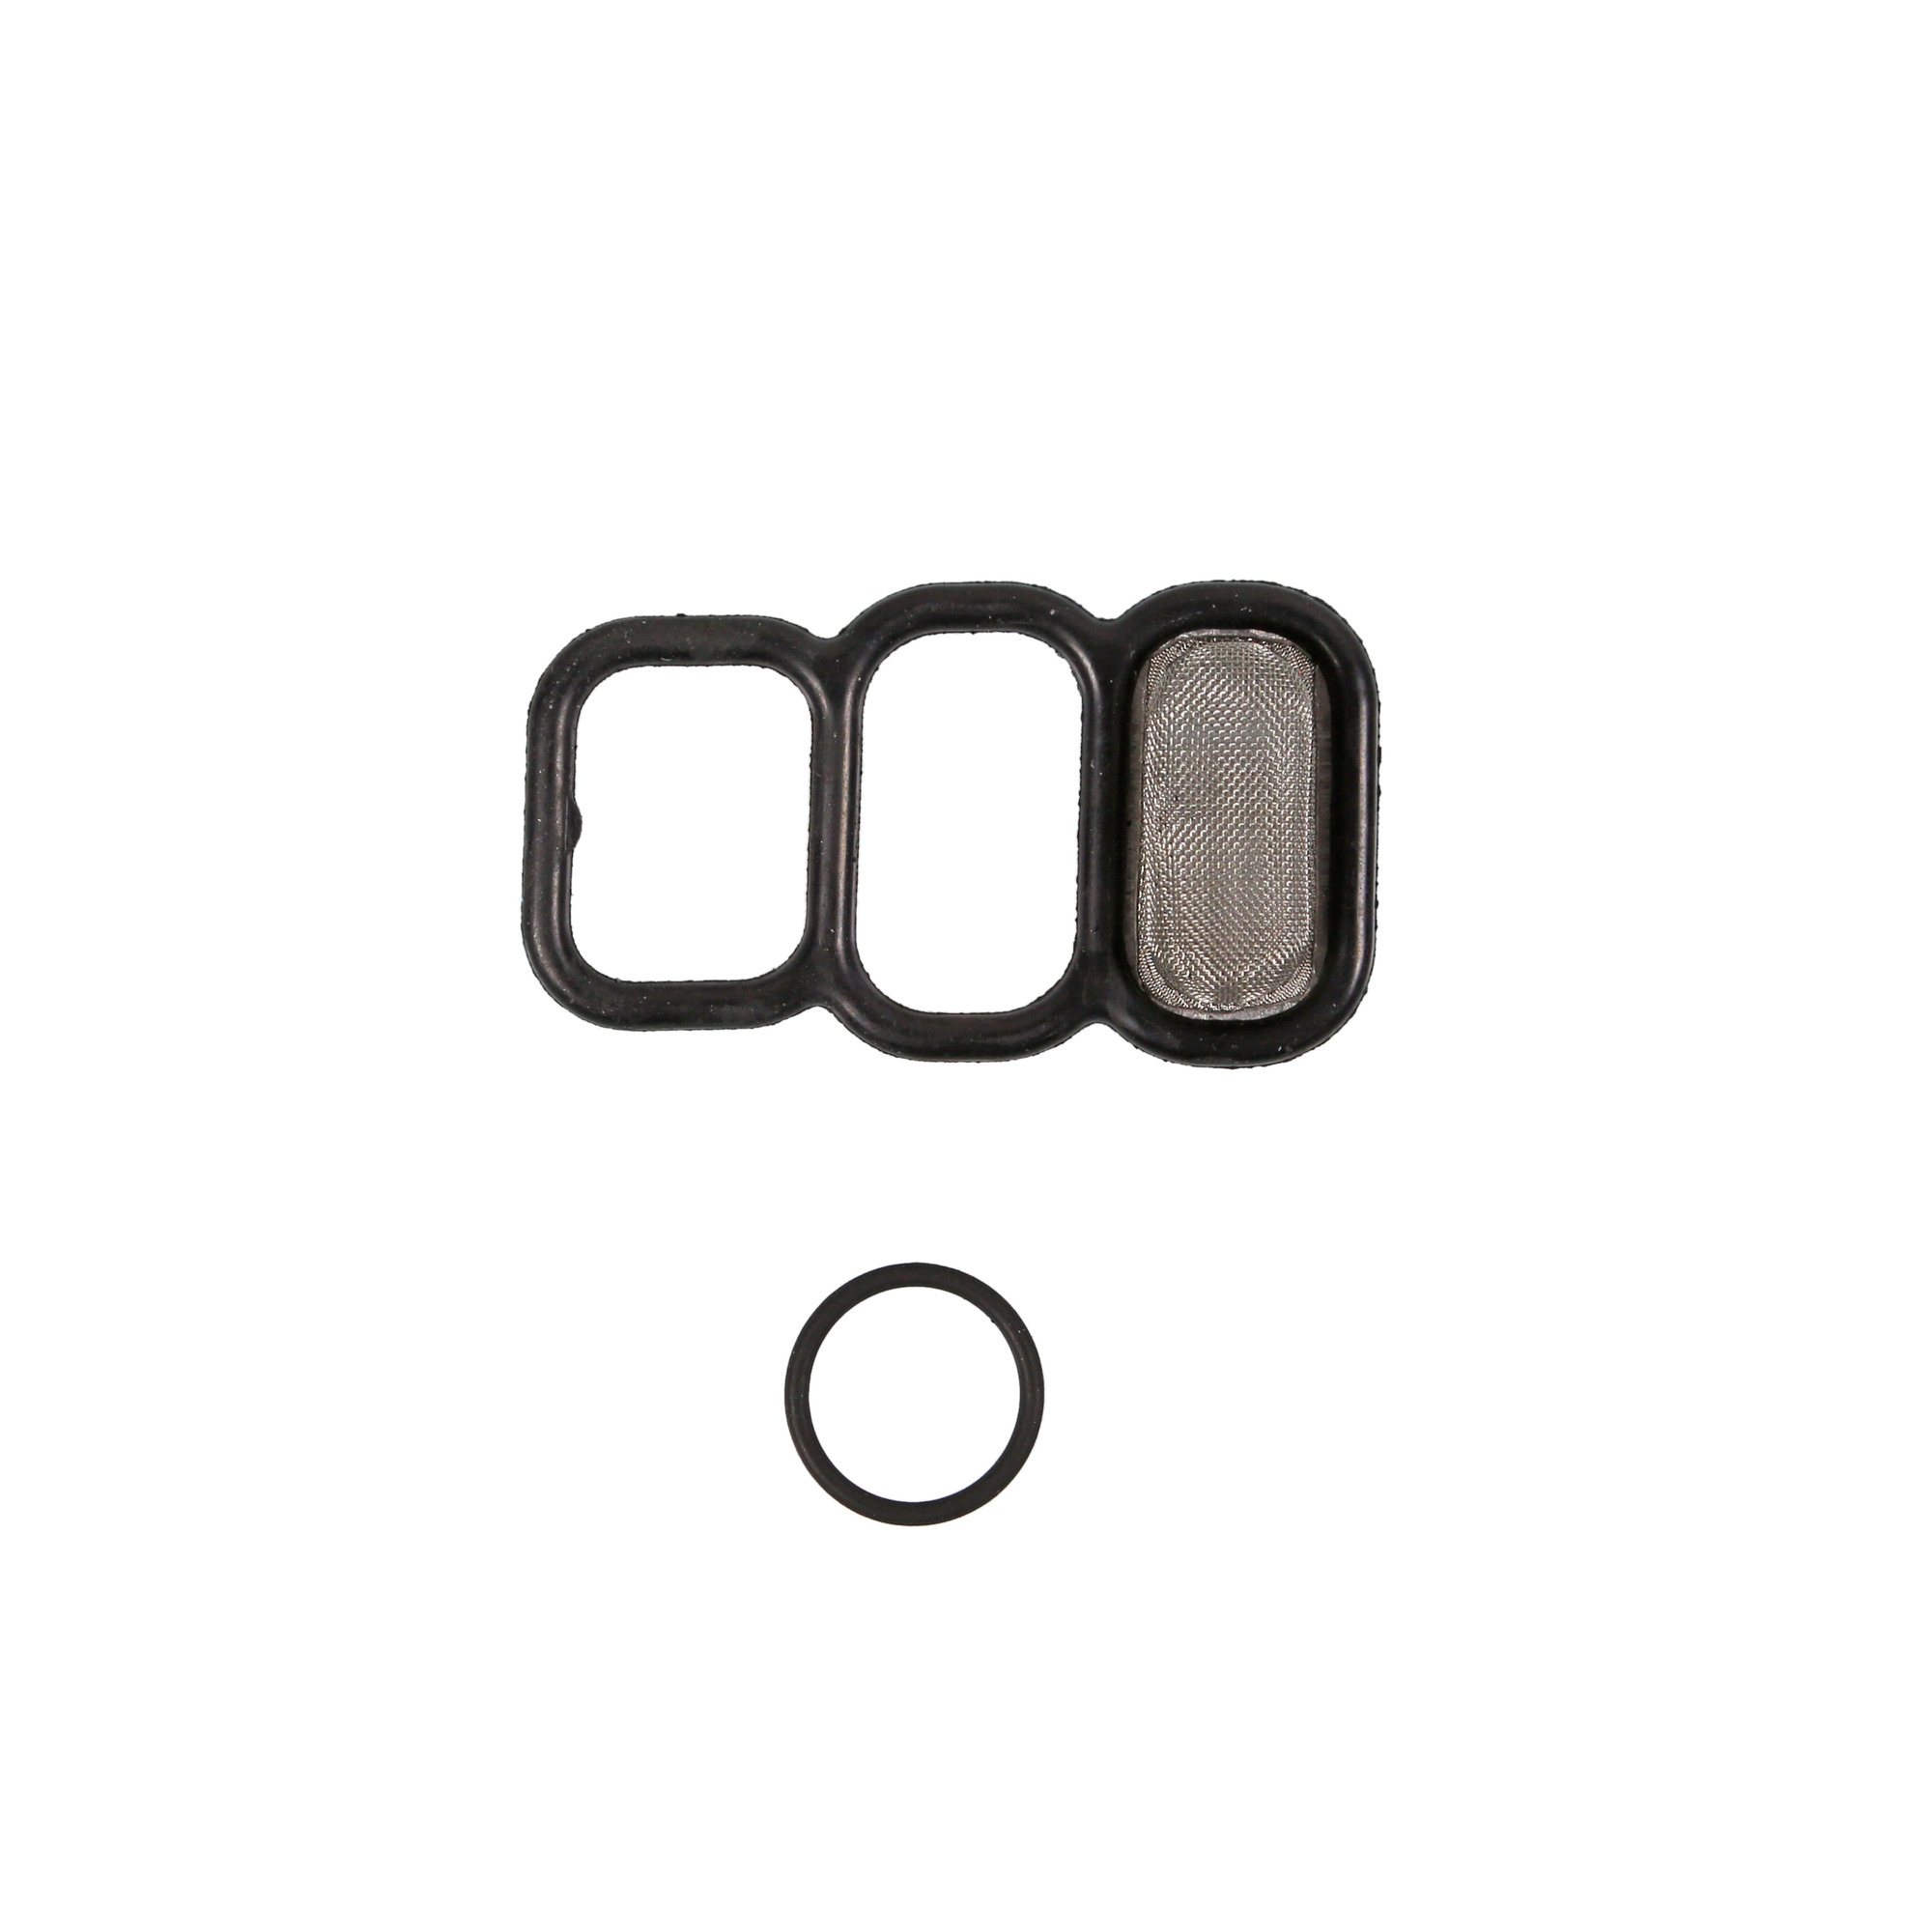 Engine Variable Valve Timing (VVT) Solenoid Filter Gasket